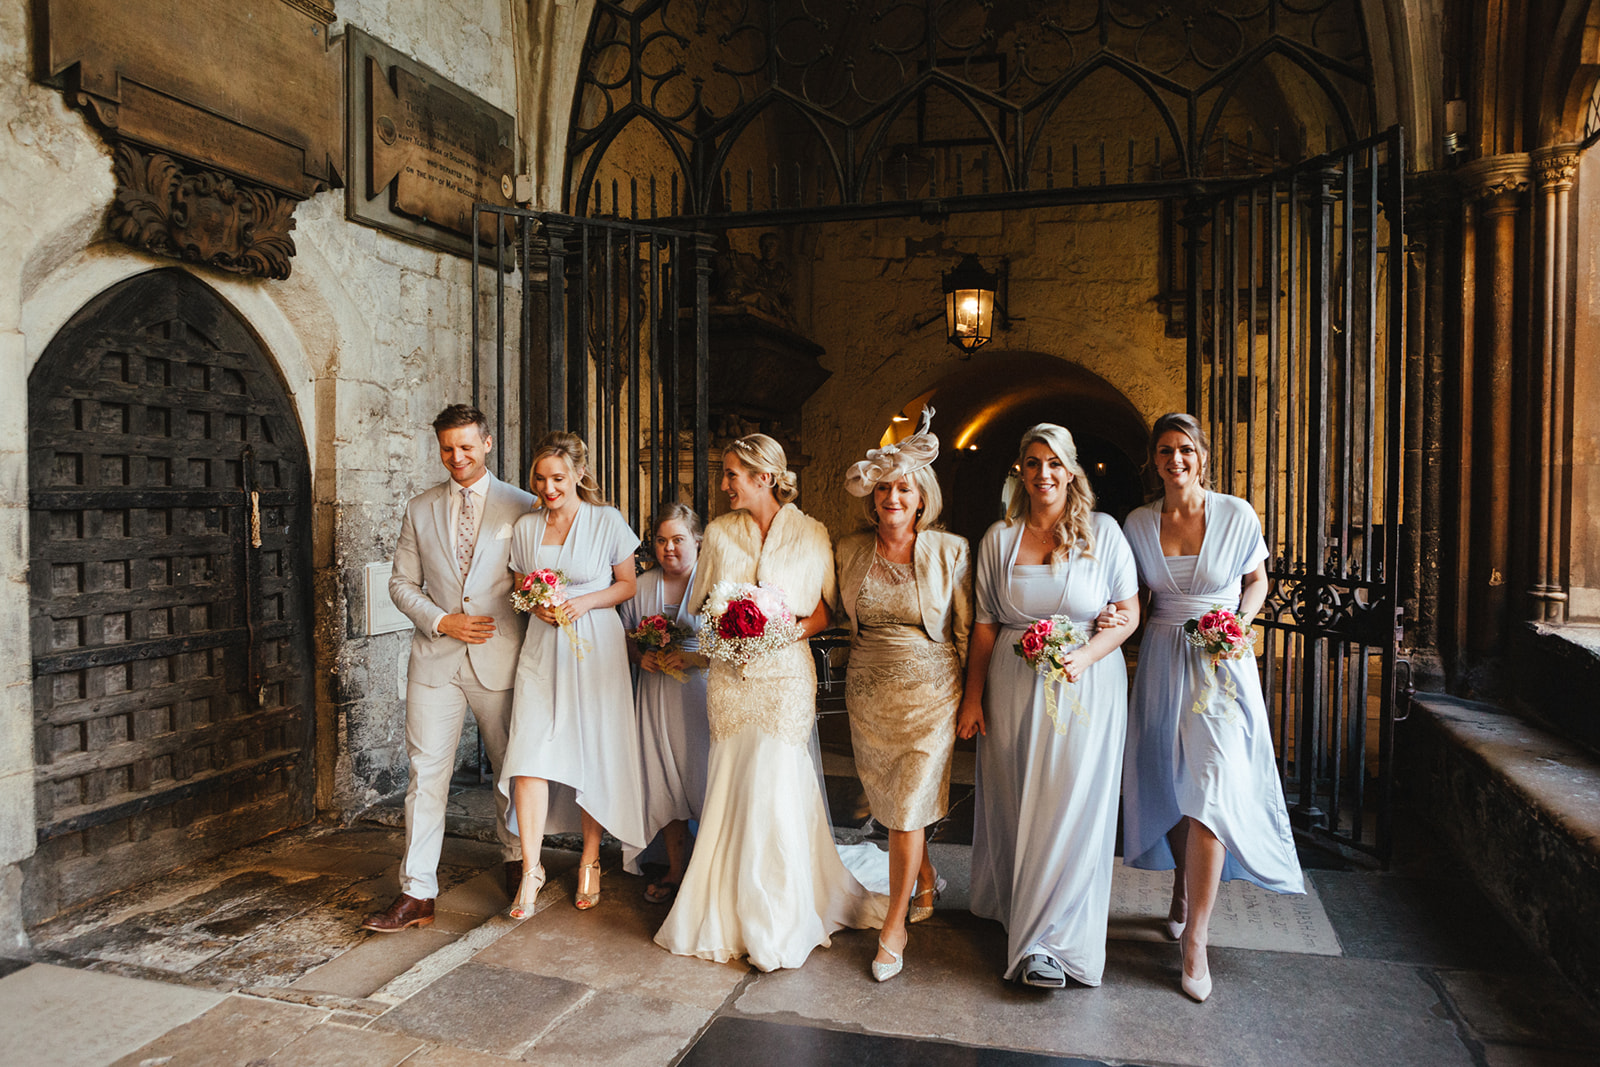 A bride walks into Westminster Abbey wedding with her bridal party